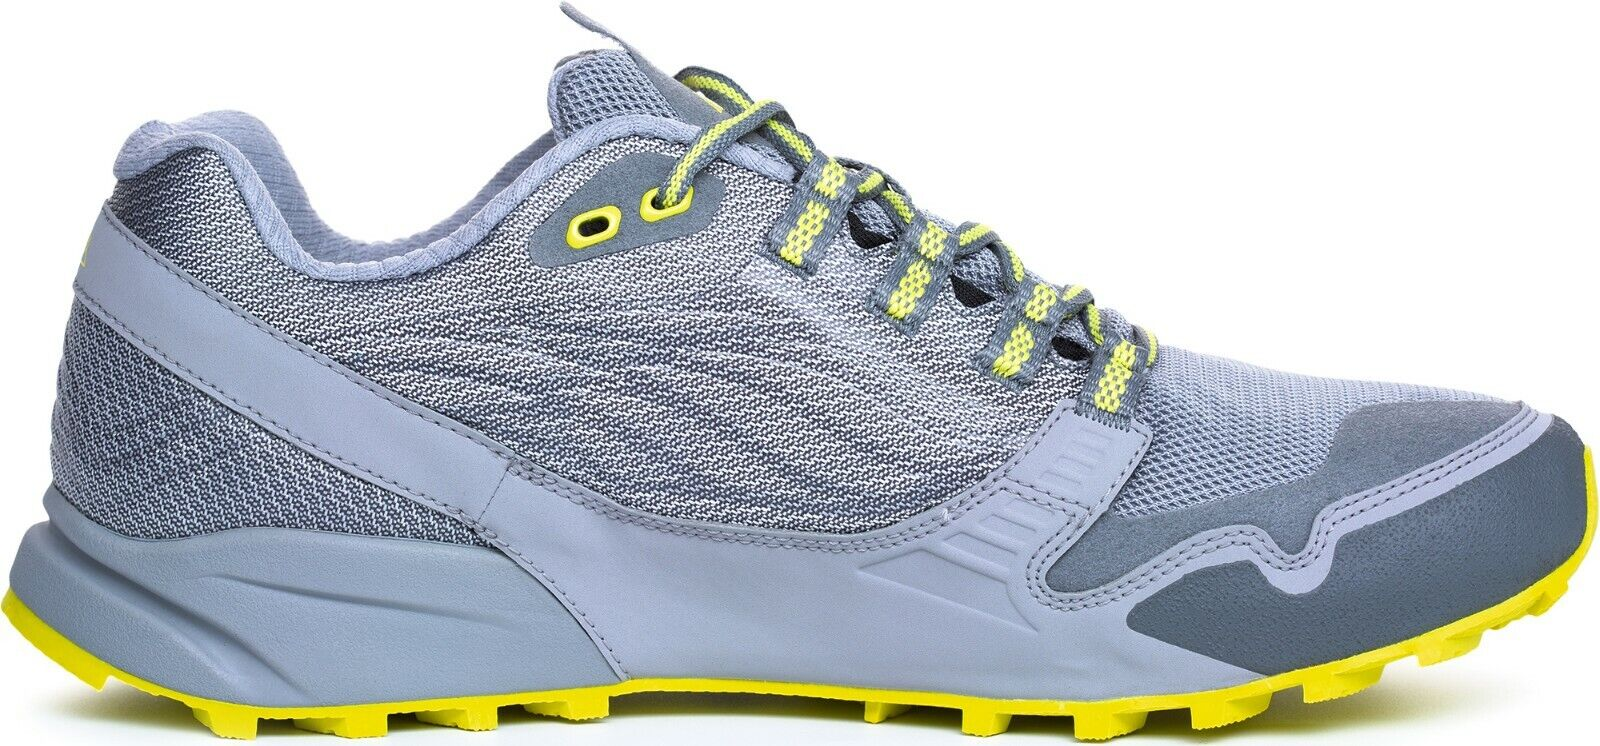 Columbia Alpine Ftg Outdry Mens Sneakers Boots Rugged terrai